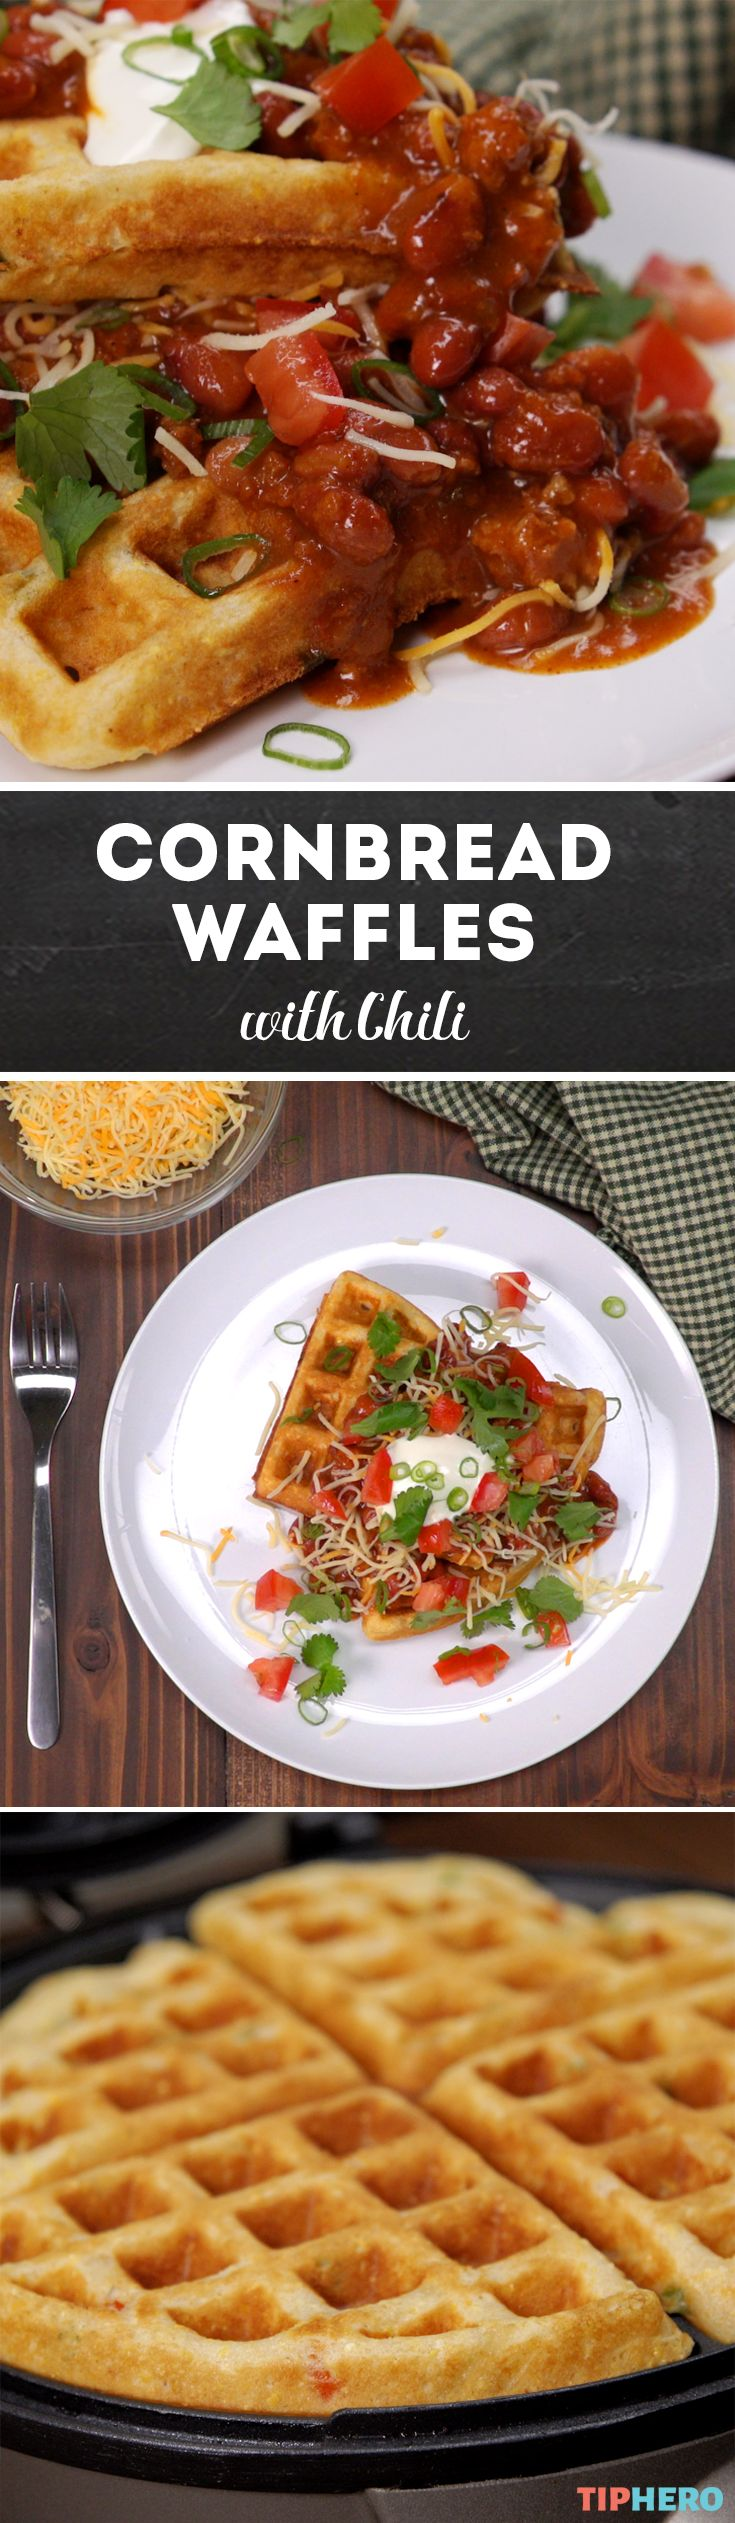 When you think Belgian-style waffles, sweet, light, and fluffy is probably the first thing you think of. But this cornbread waffle recipe will have you seeing waffles in a whole new light!  Instead of berries you'll be adding jalapeños and onions baked right into the batter and paring it with your favorite chili! Click for the recipe and give it a try!